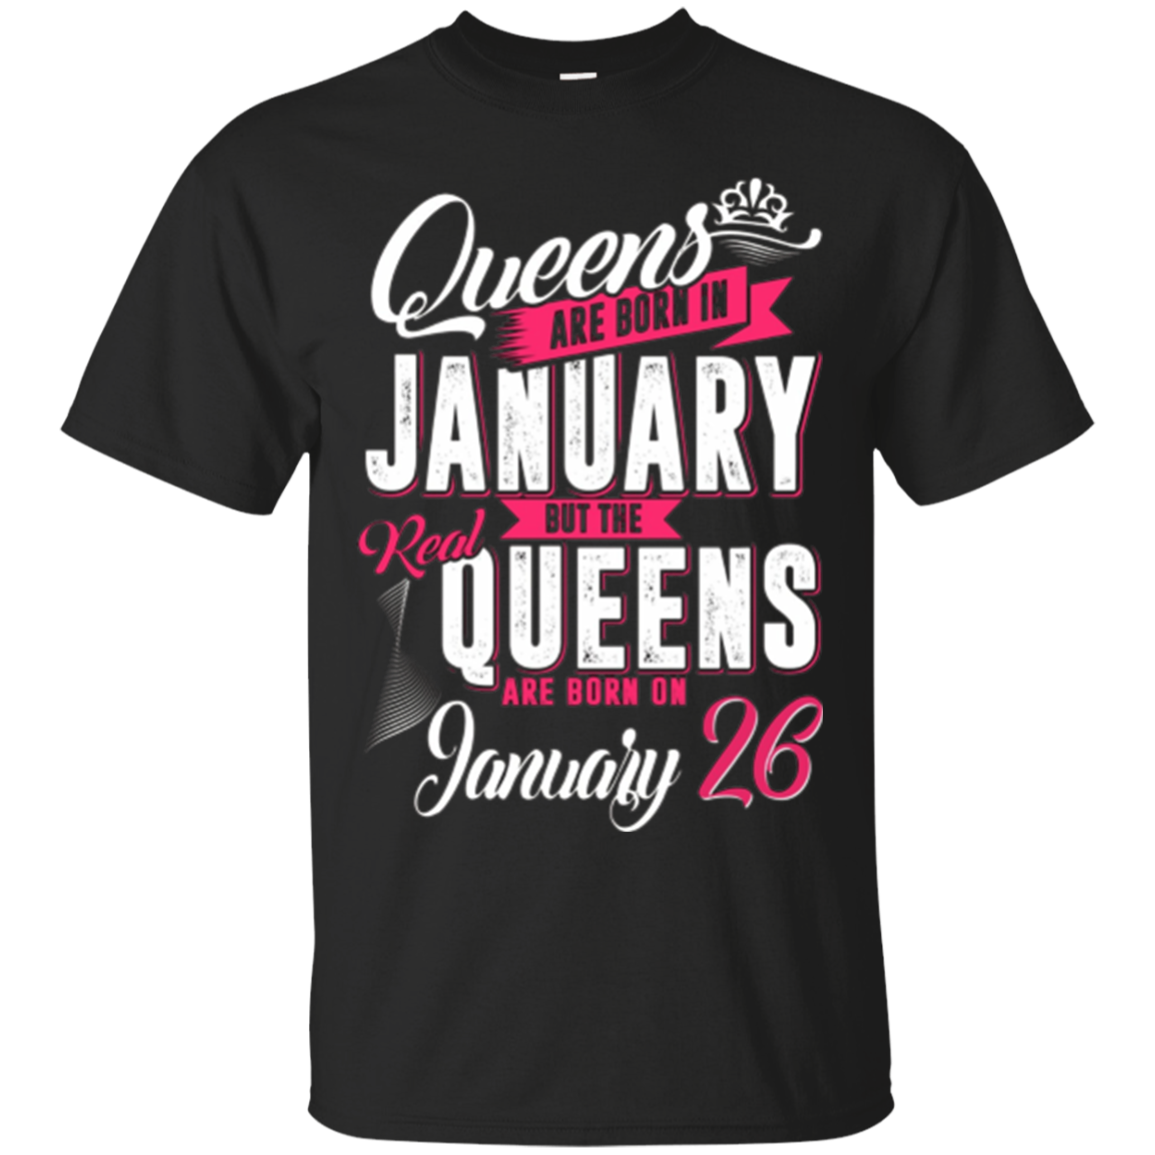 Real Queens Are Born On January 26 T-Shirt Birthday Shirt